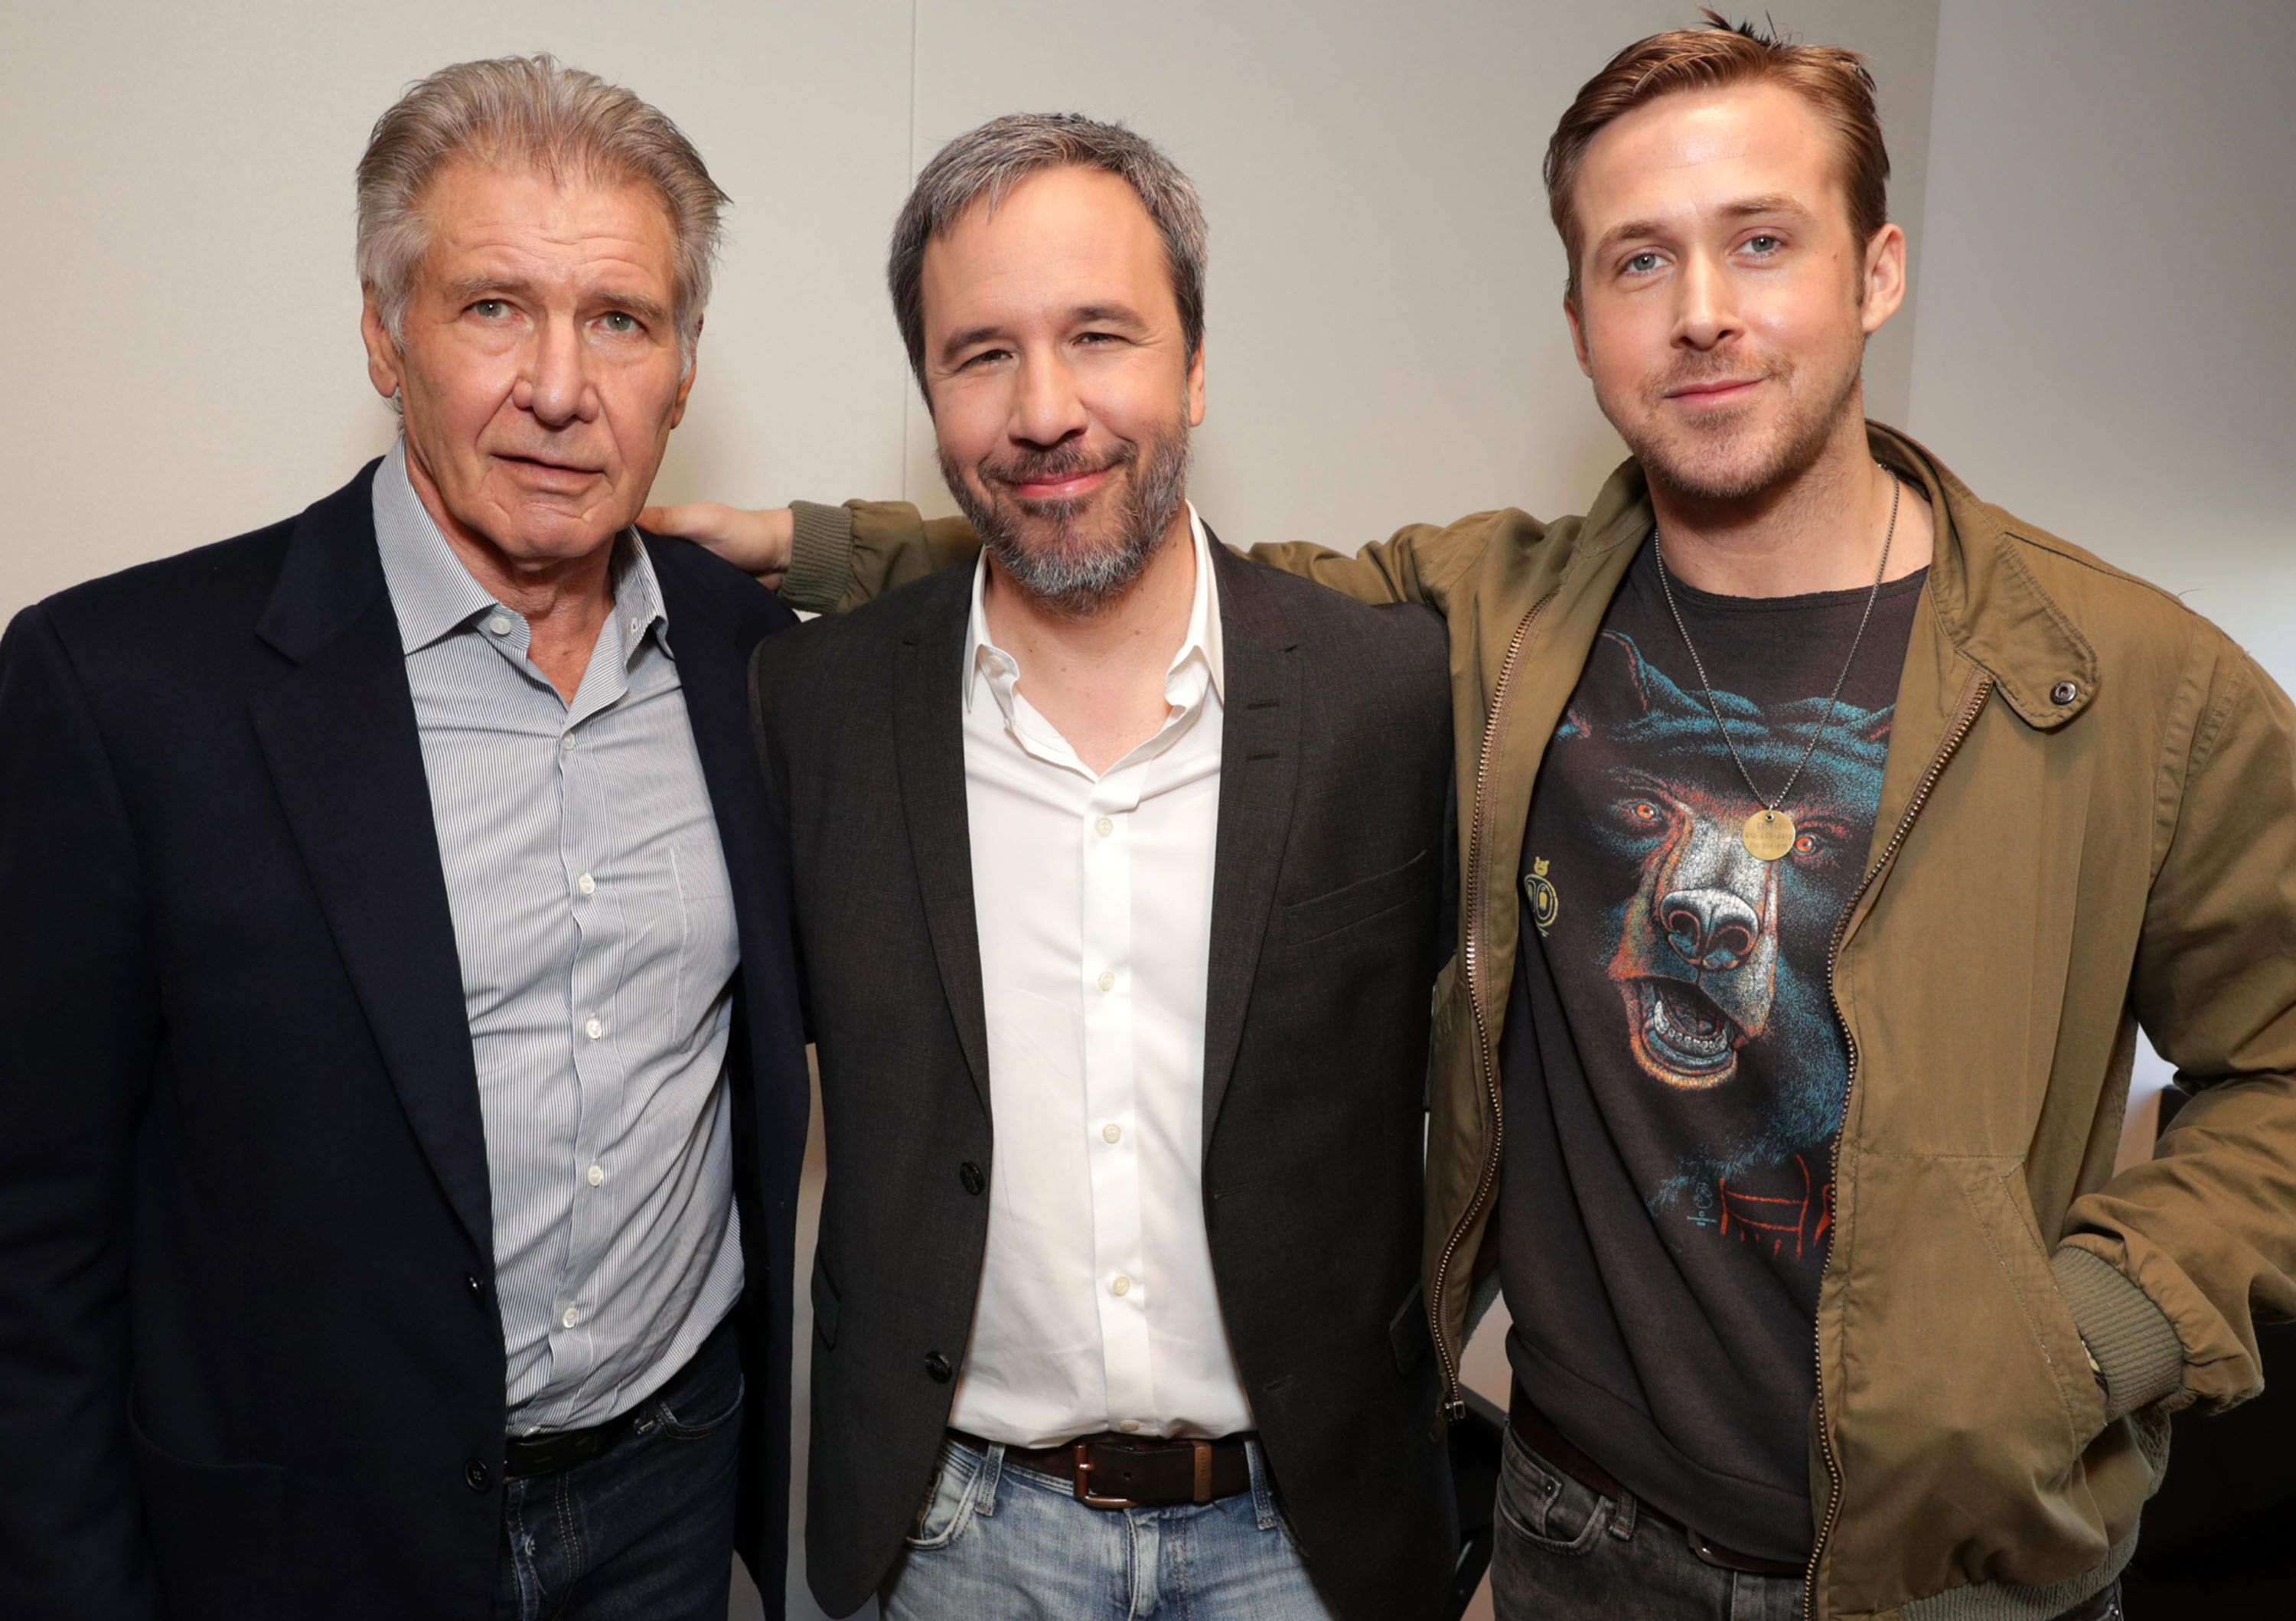 Harrison Ford, Ryan Gosling can't stop laughing in boozy British interview